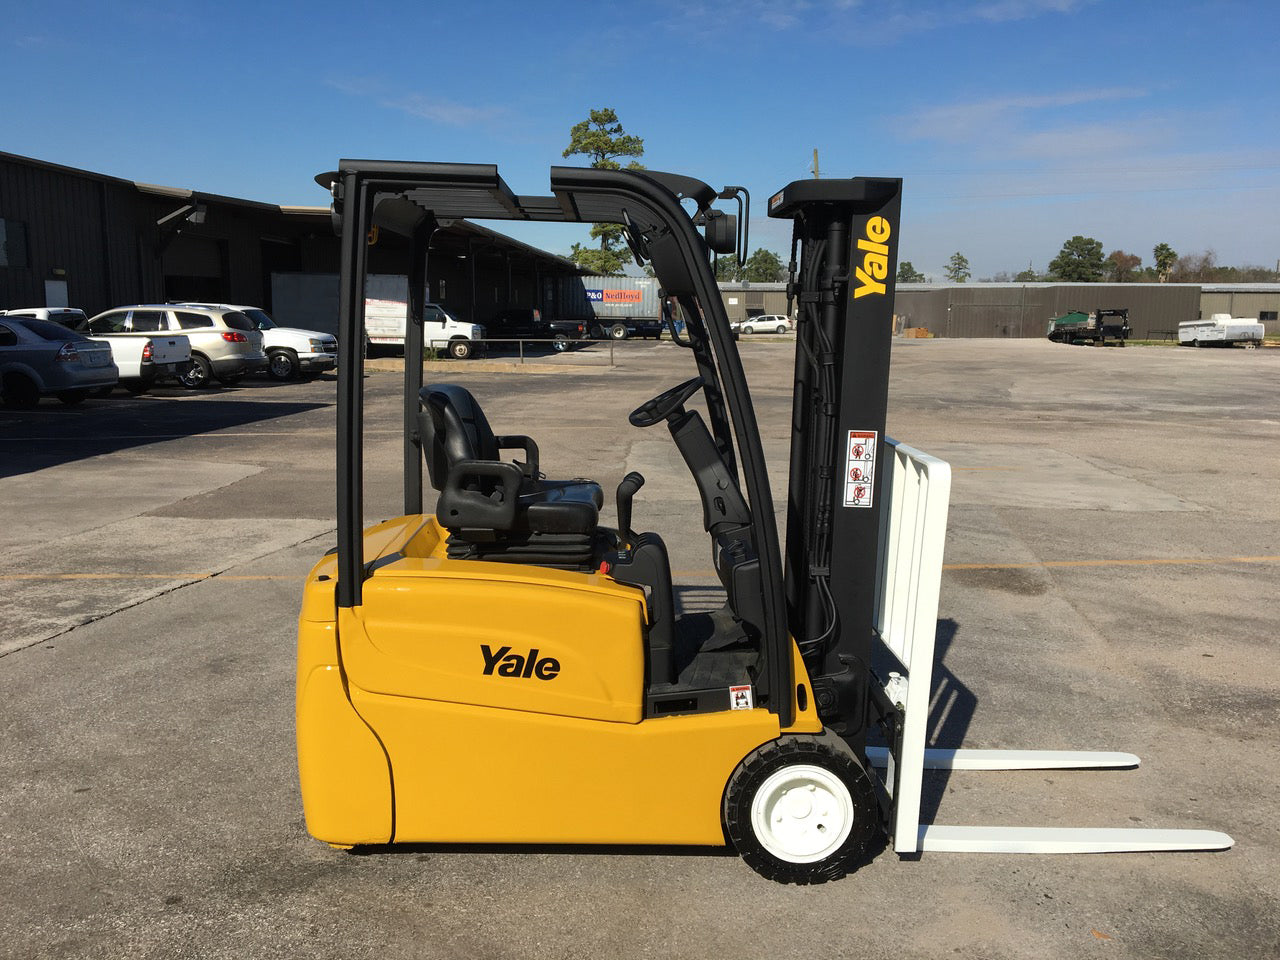 2015 YALE ERP030VT 3000 LB 36 VOLT ELECTRIC FORKLIFT CUSHION 86/192 3 STAGE  MAST SIDE SHIFTER 2634 HOURS STOCK # BF9115489-TXB